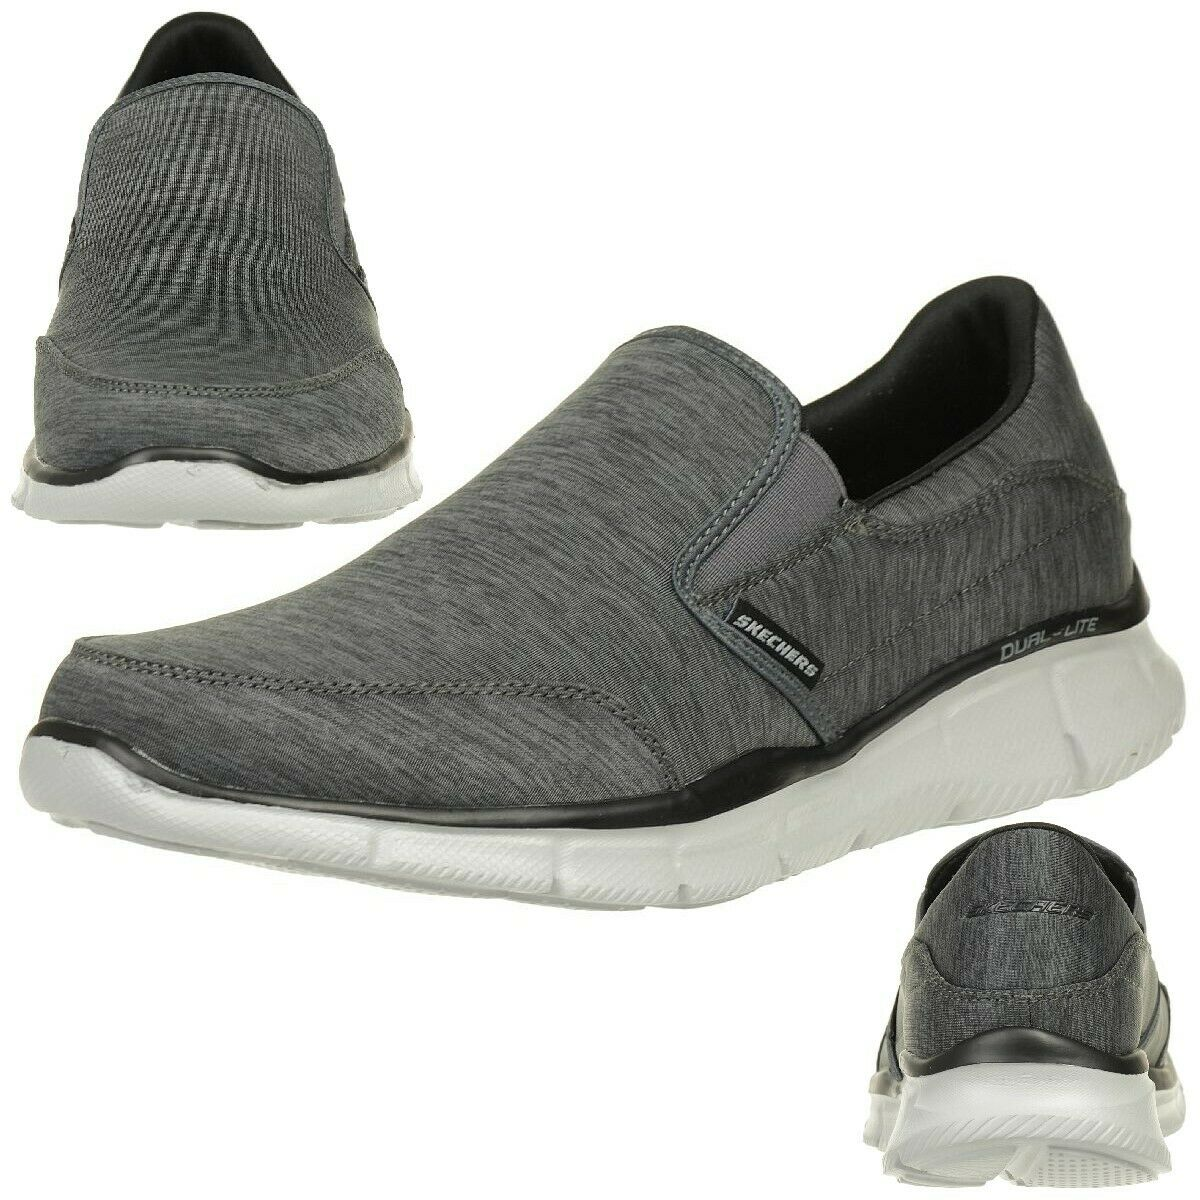 Skechers Equalizer Forward Thinking Men's Slippers Moccasin Slip on gris